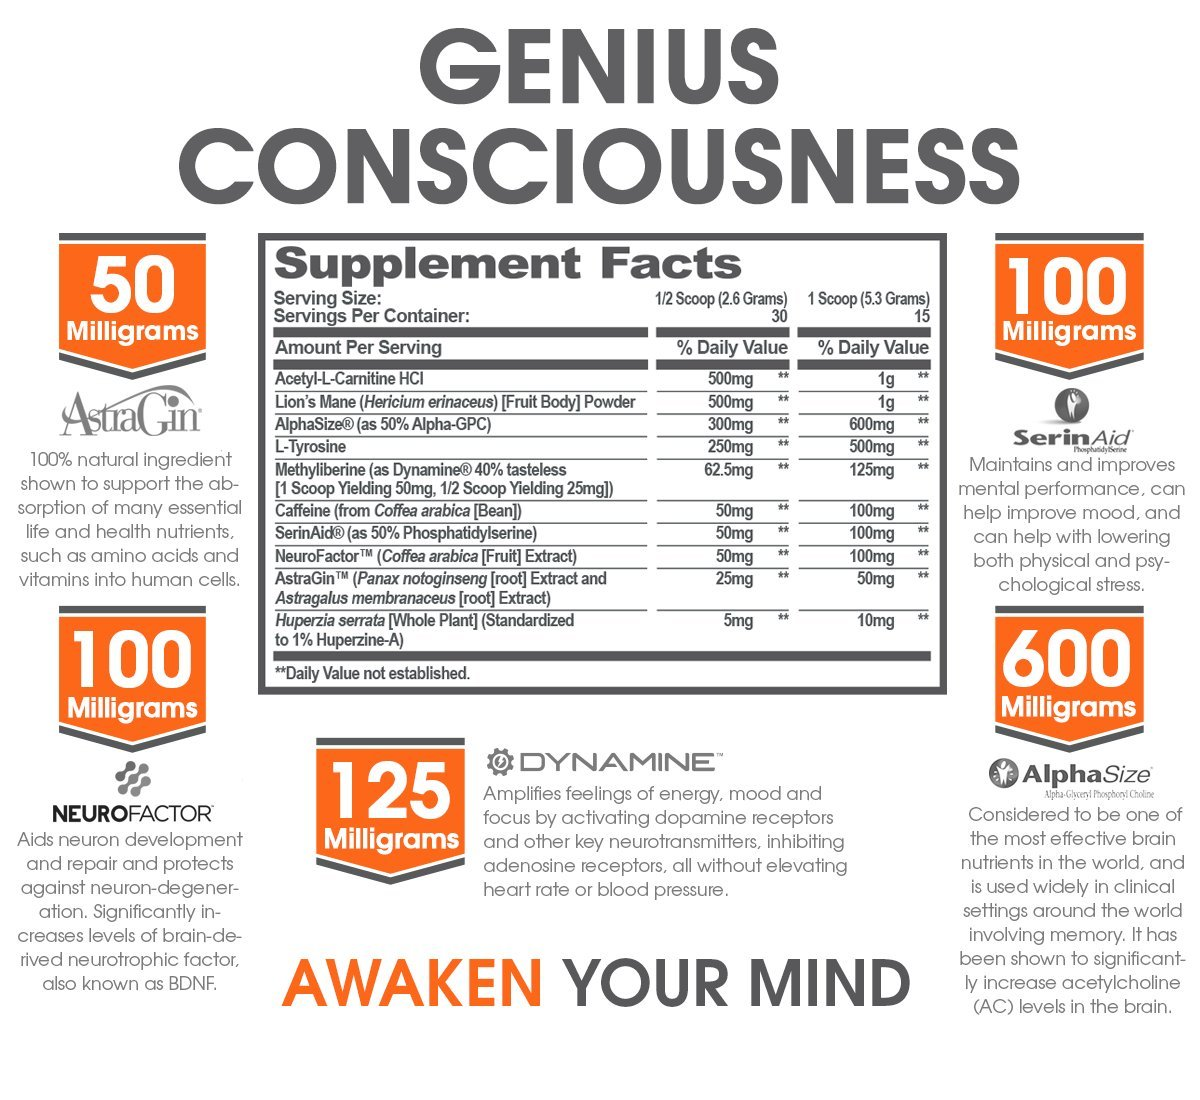 Genius Consciousness Ingredients